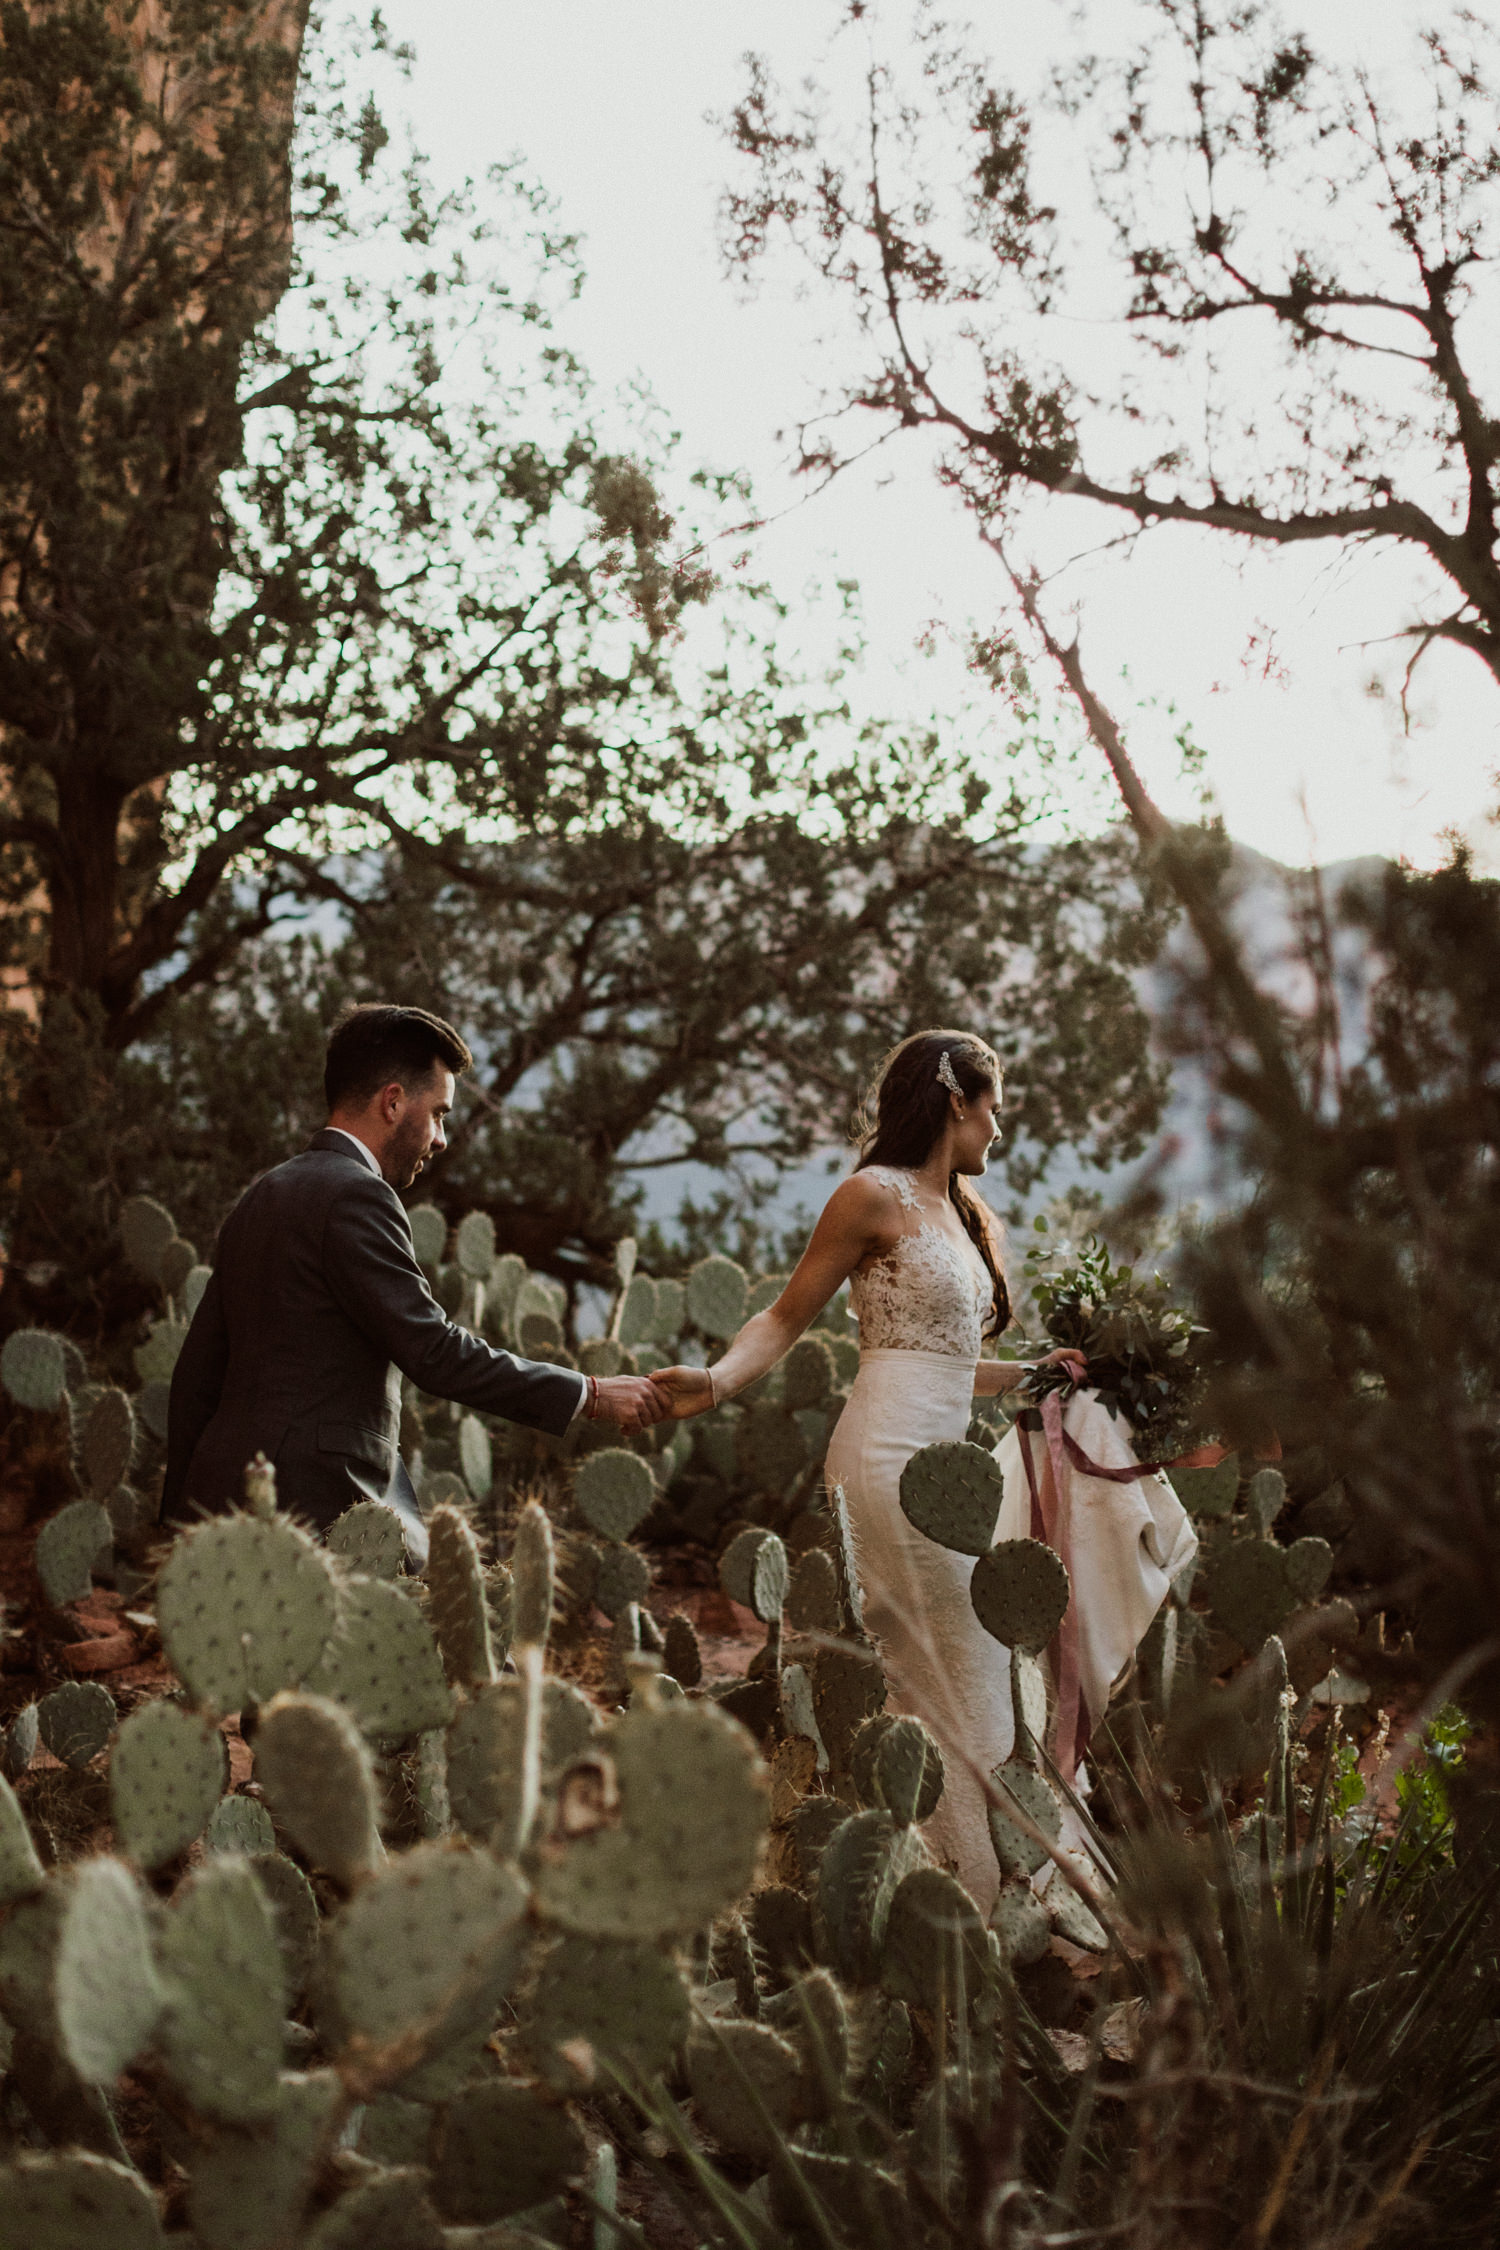 62_intimate-sedona-arizona-wedding-85.jpg